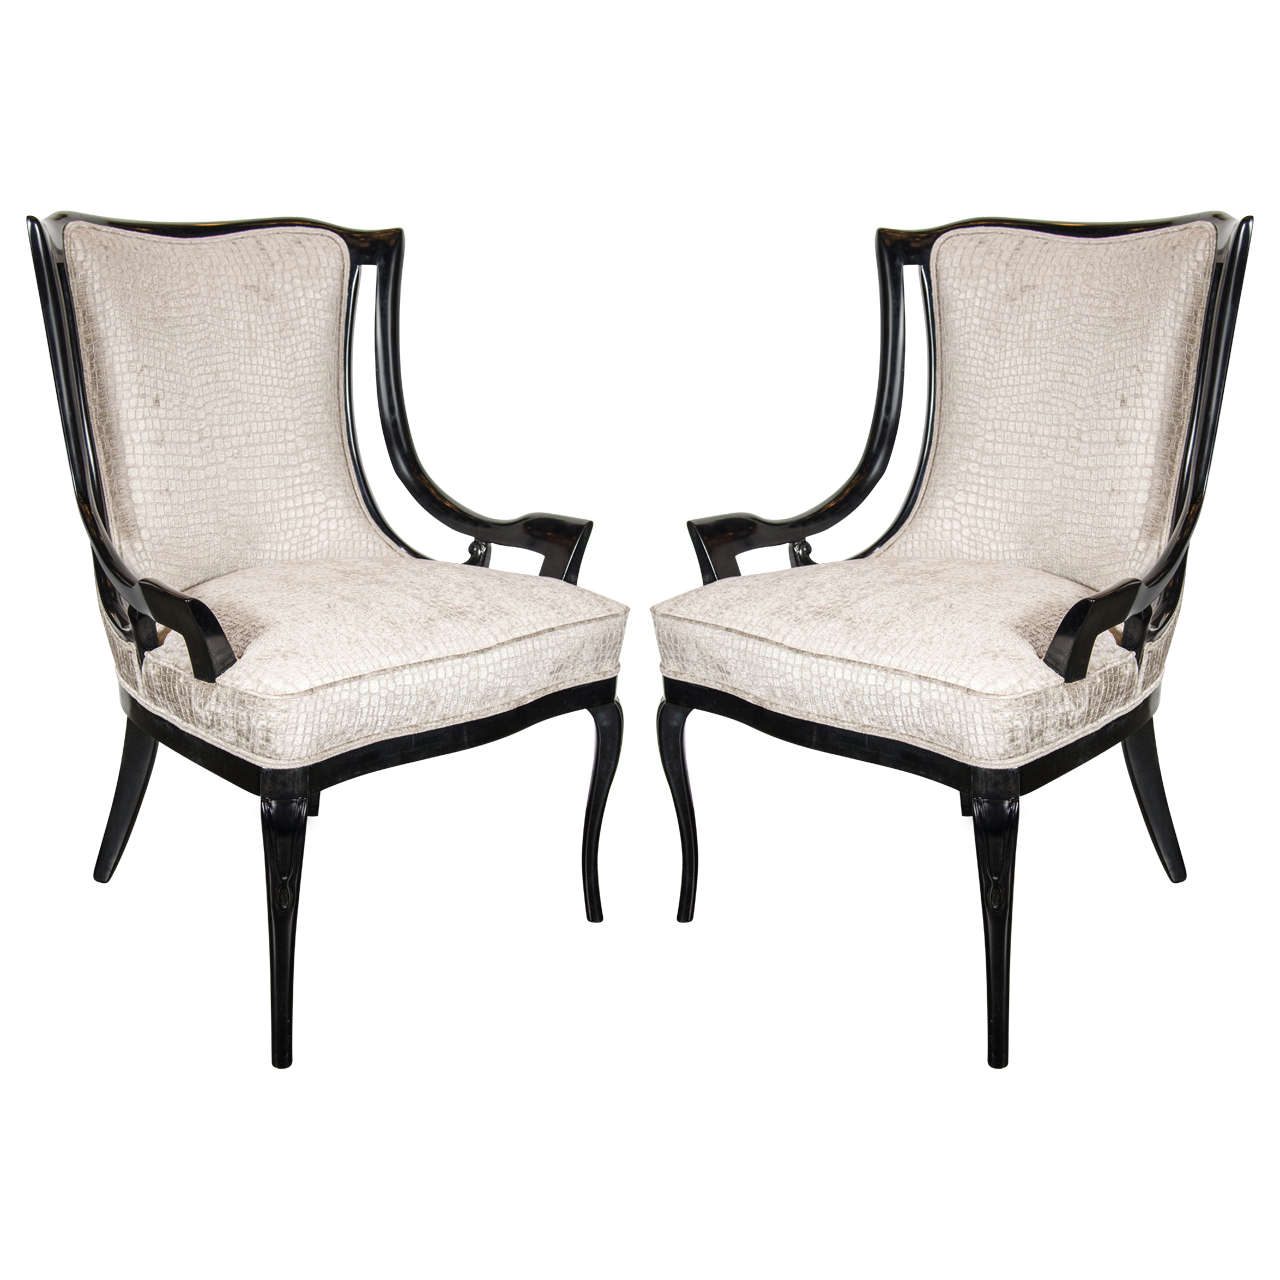 Contemporary Occasional Chair | Occasional Chairs | Tufted Club Chair